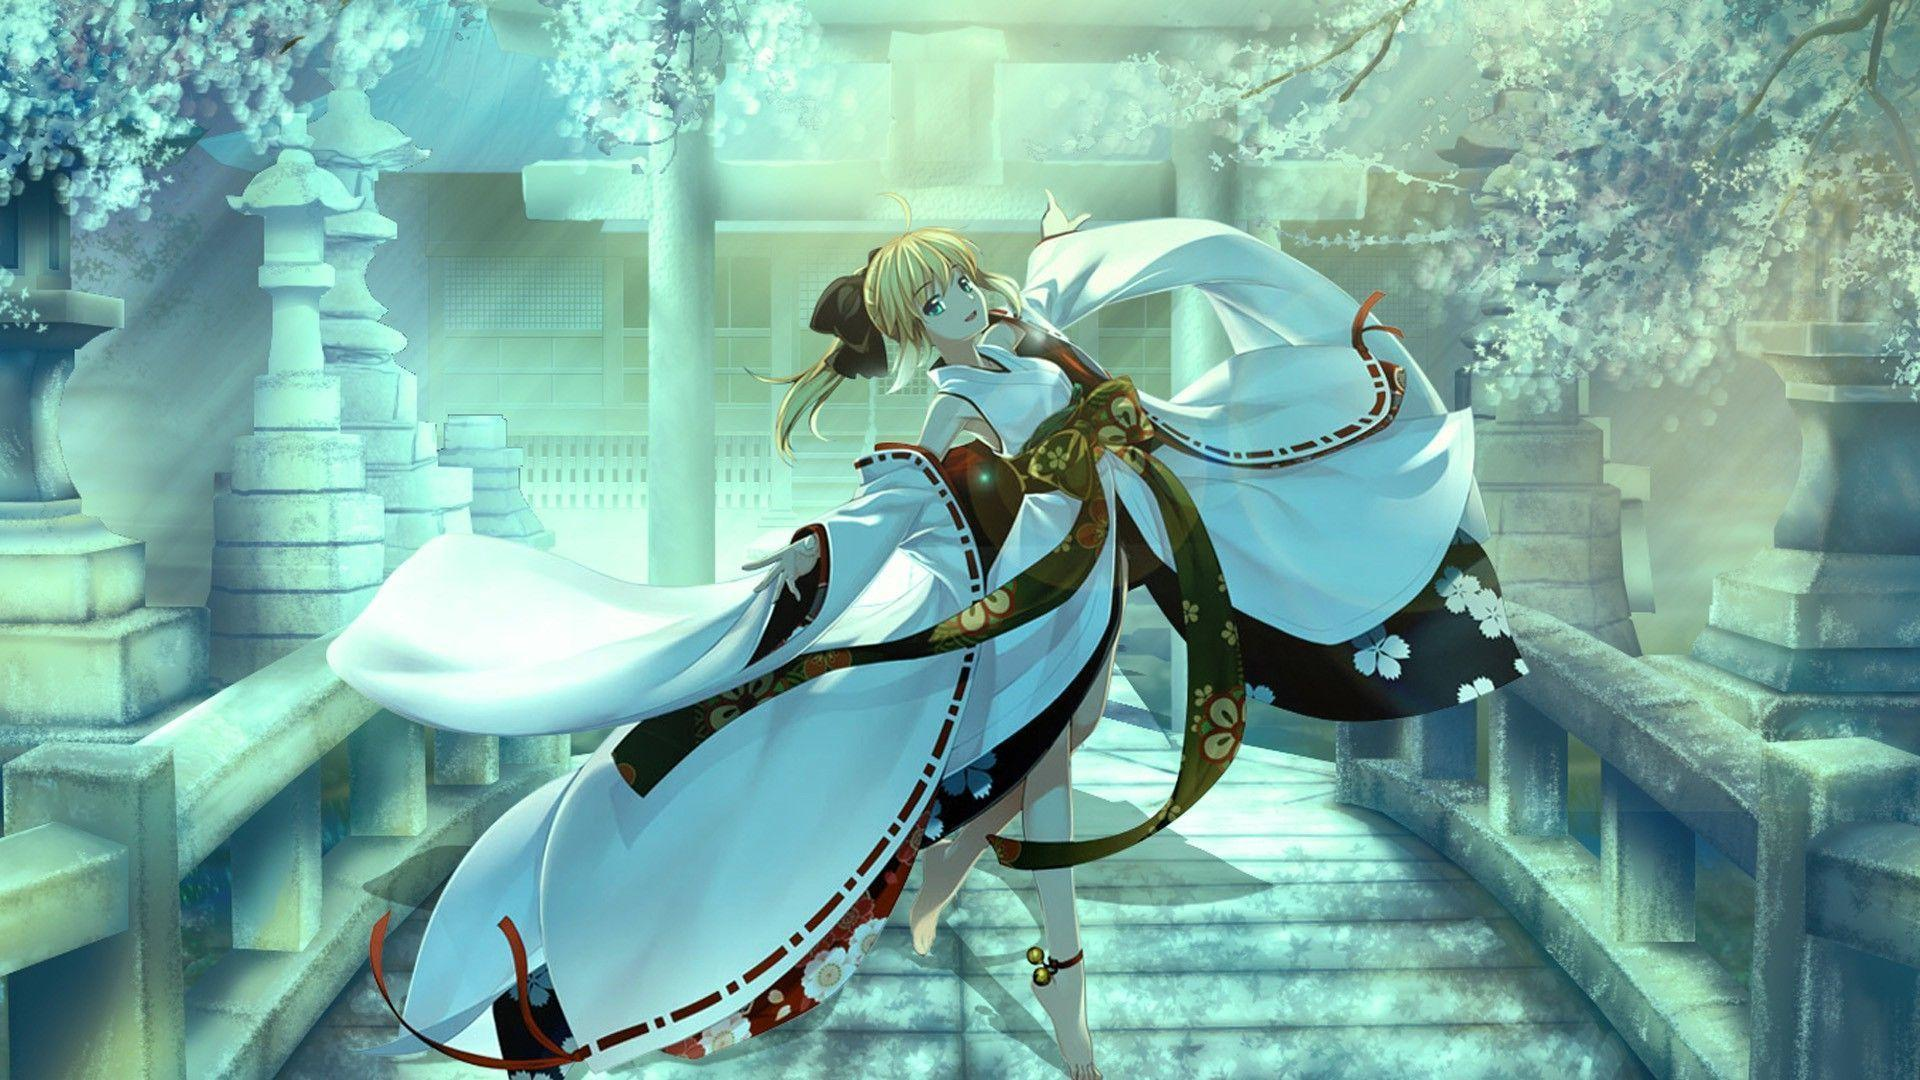 Saber Lily Wallpapers